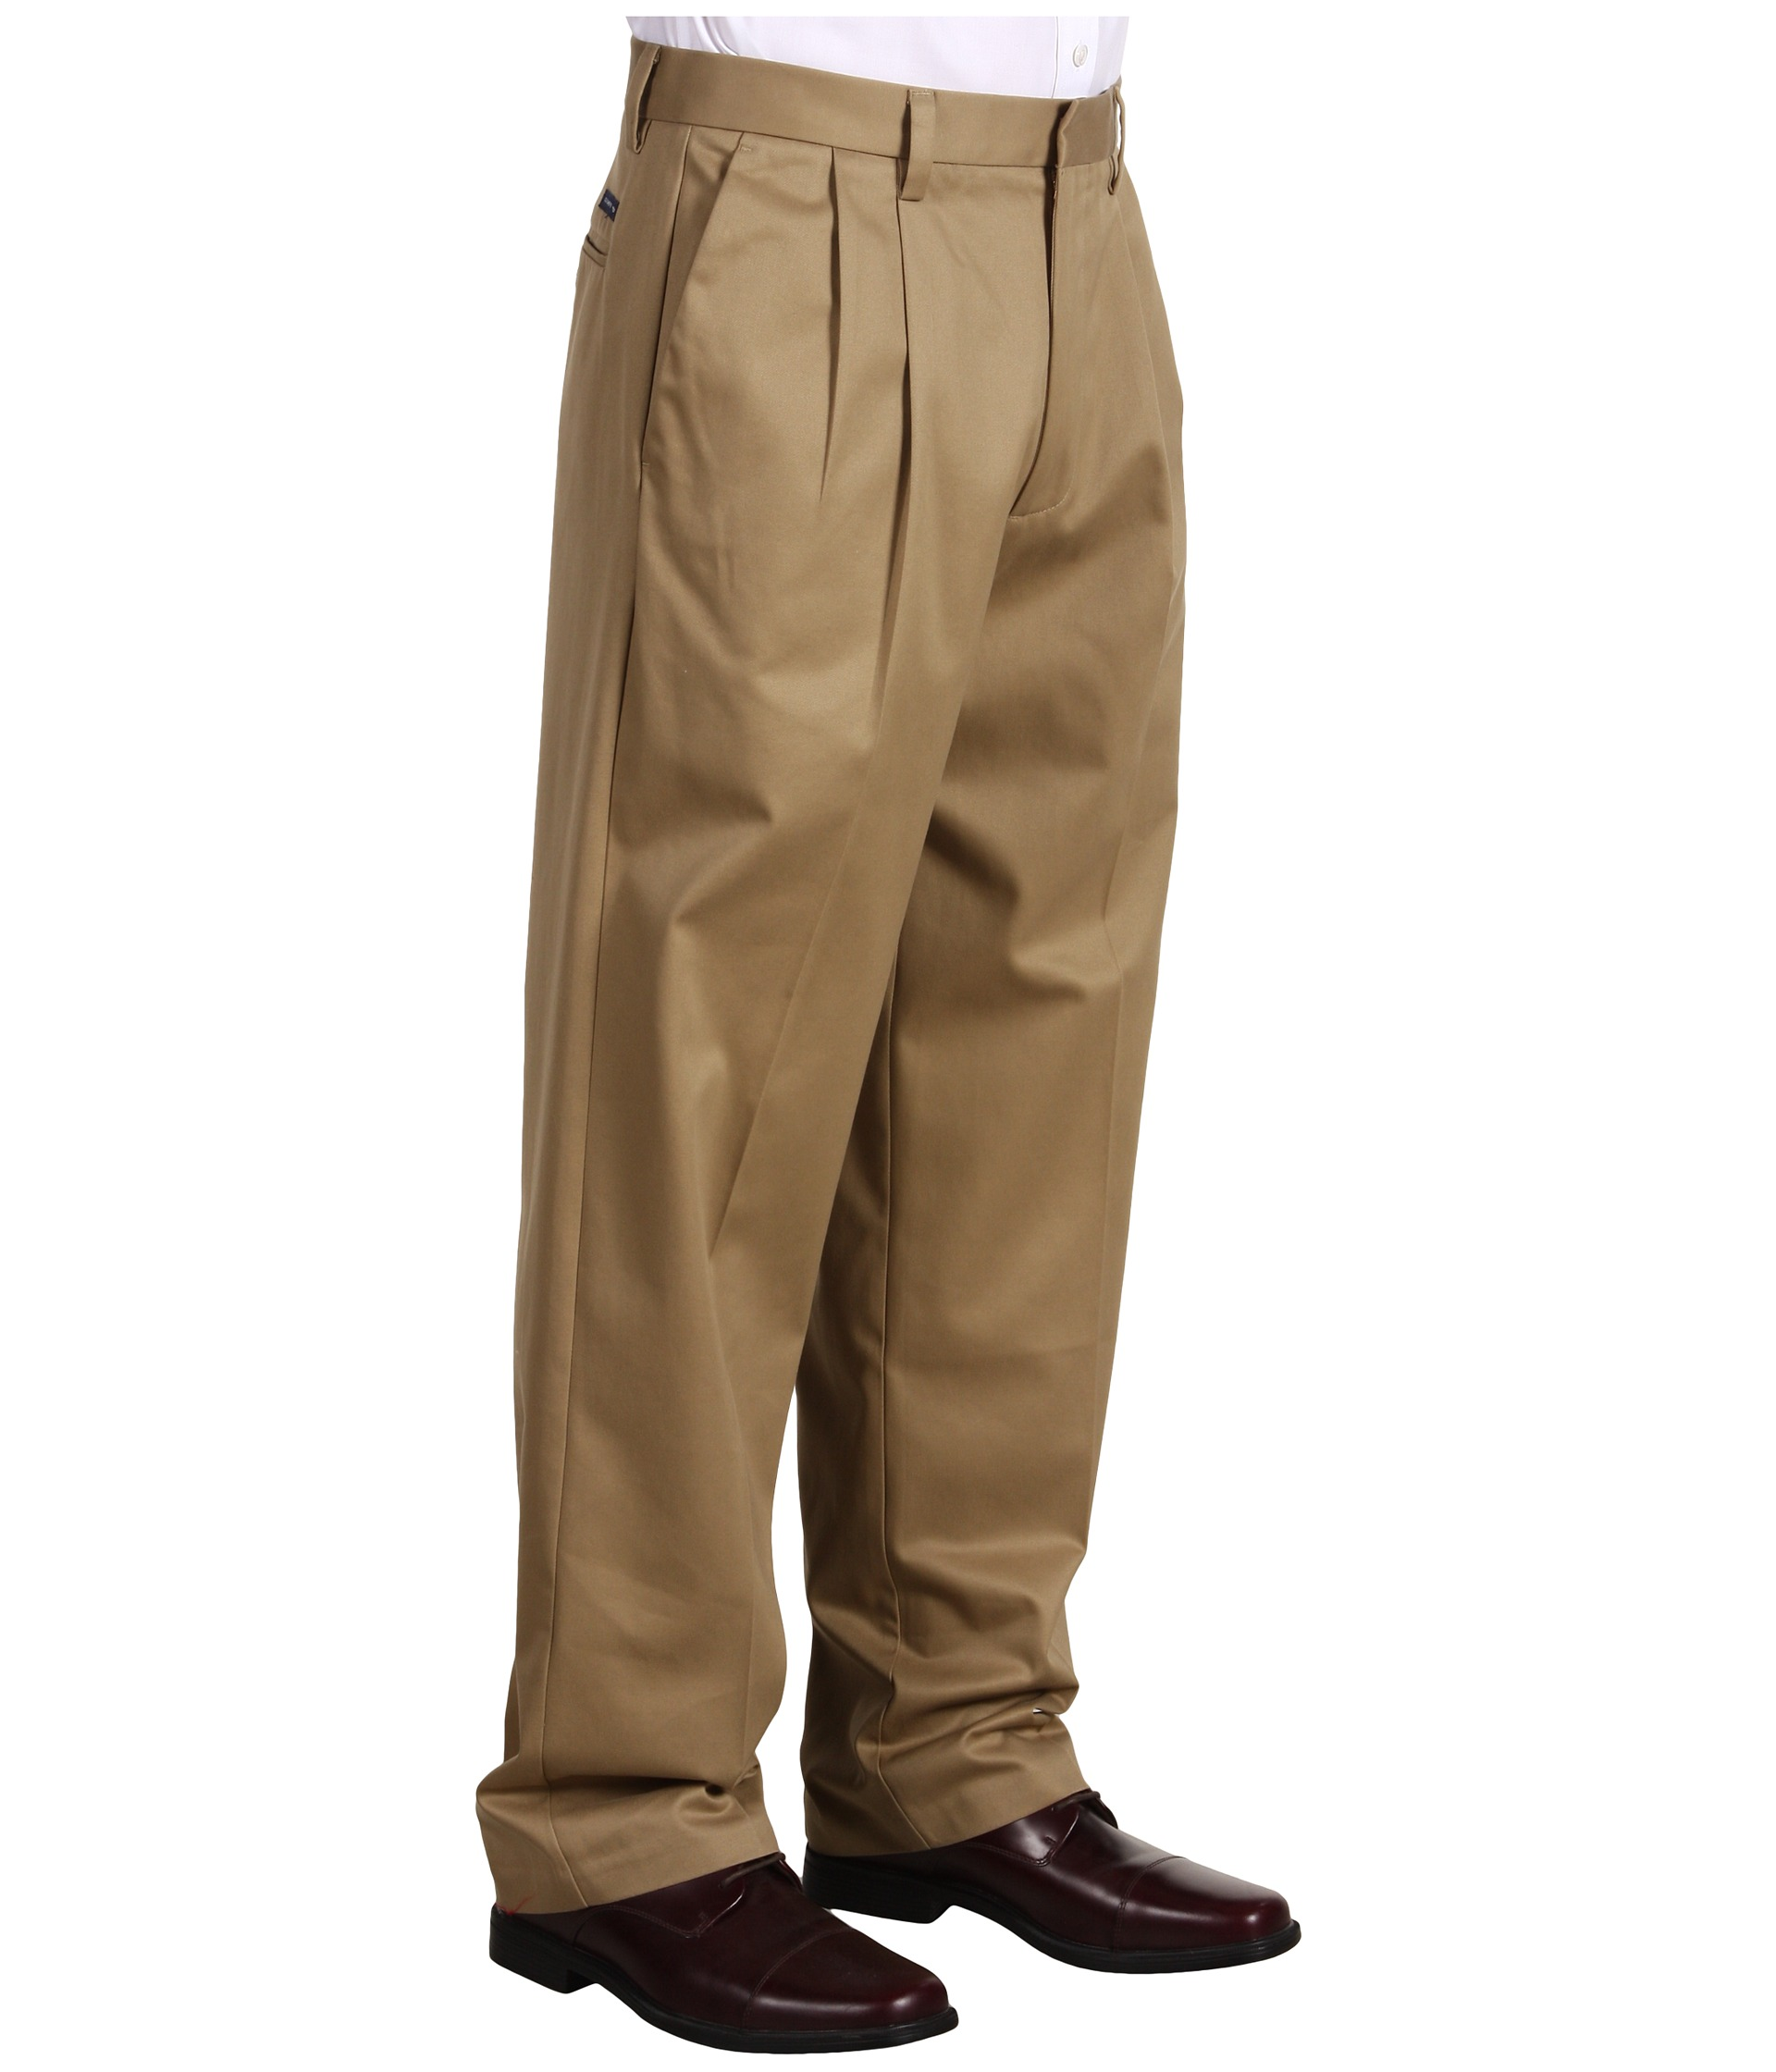 mens pleated cuffed khaki pants - Pi Pants